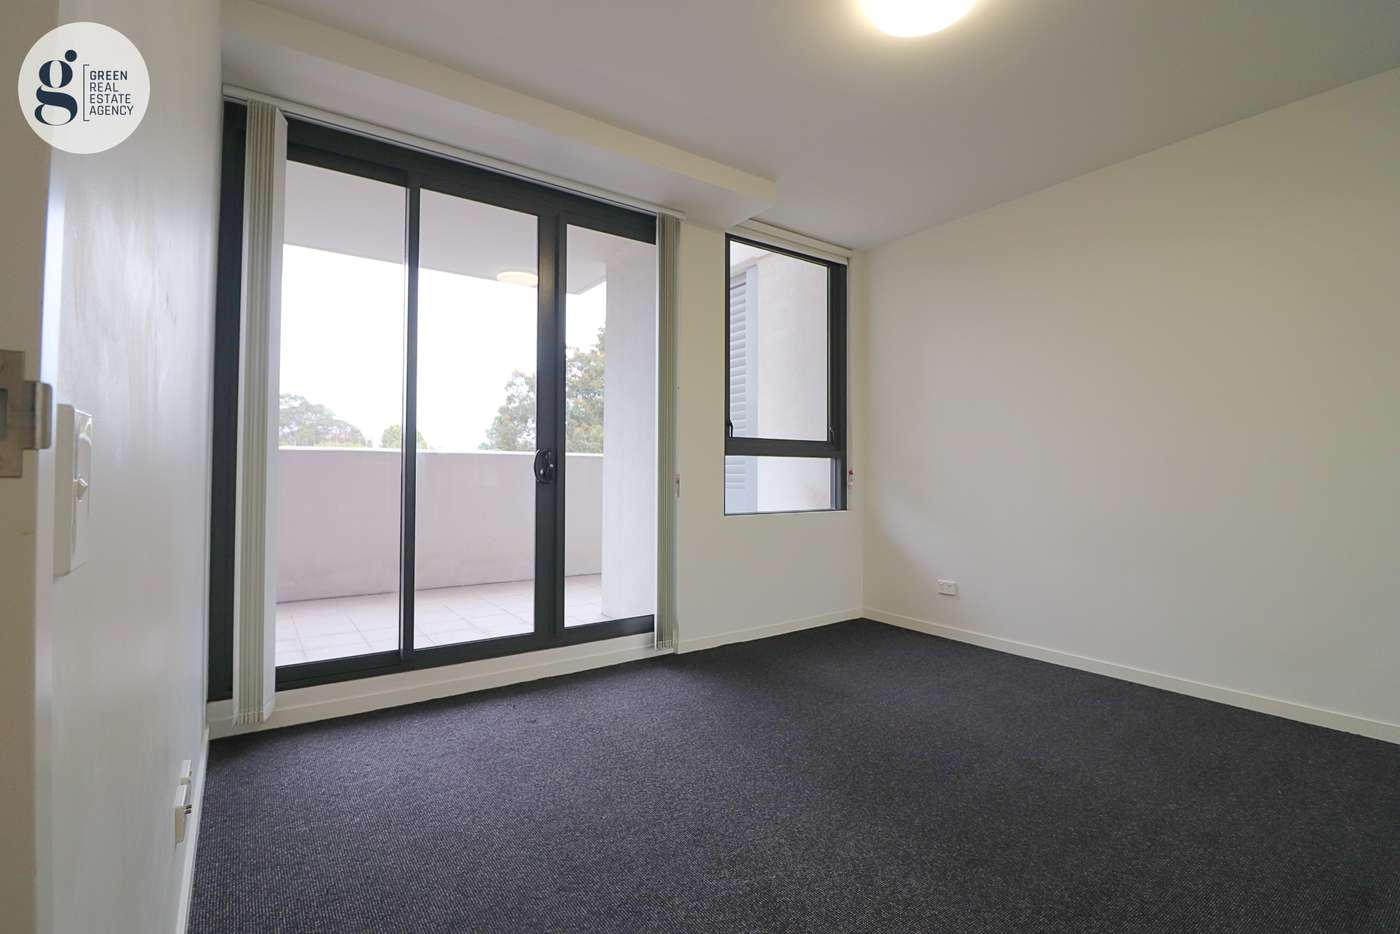 Seventh view of Homely apartment listing, 212/17 Chatham Road, West Ryde NSW 2114